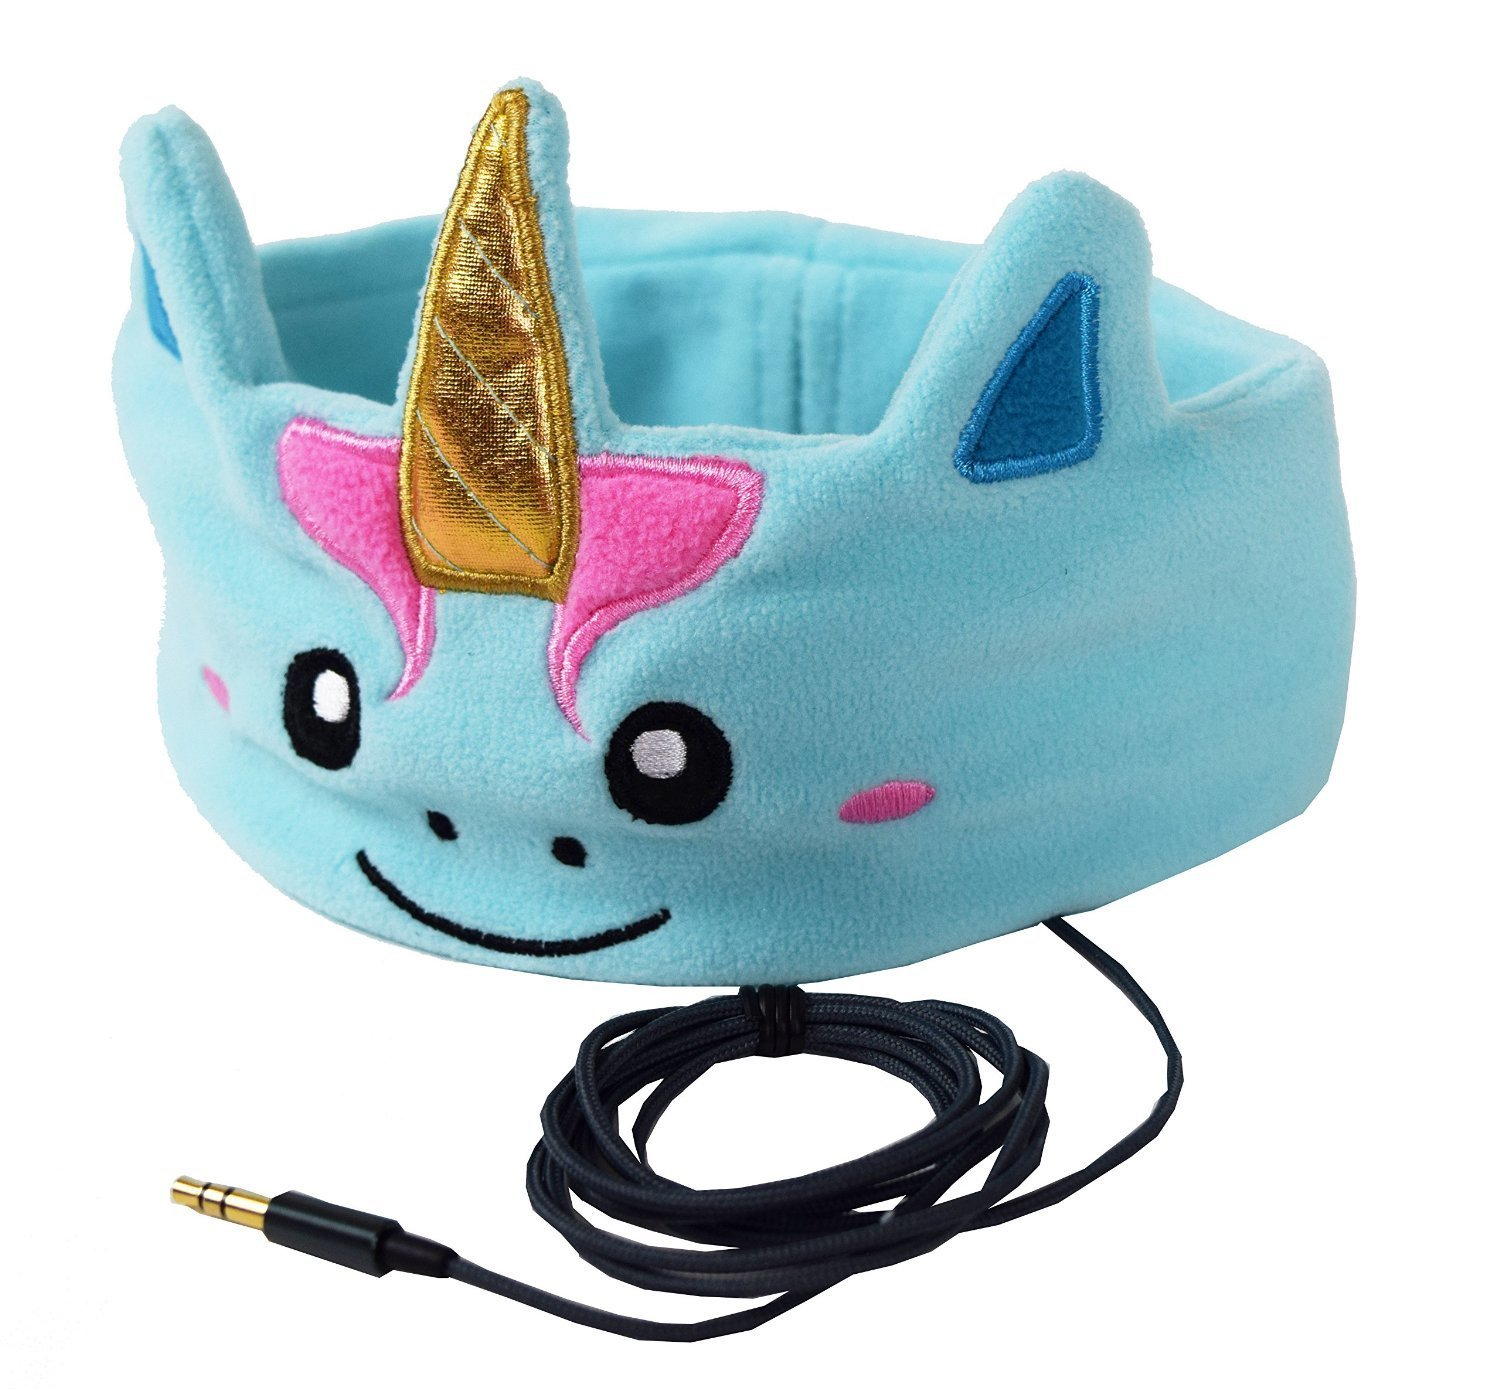 CozyPhones Kids Headband Headphones Volume Limited Childrens Earphones Ultra-Thin Speakers Home Travel Sleep Comfortable Soft Fleece (MYSTIC UNICORN) Boys Girls Toddler